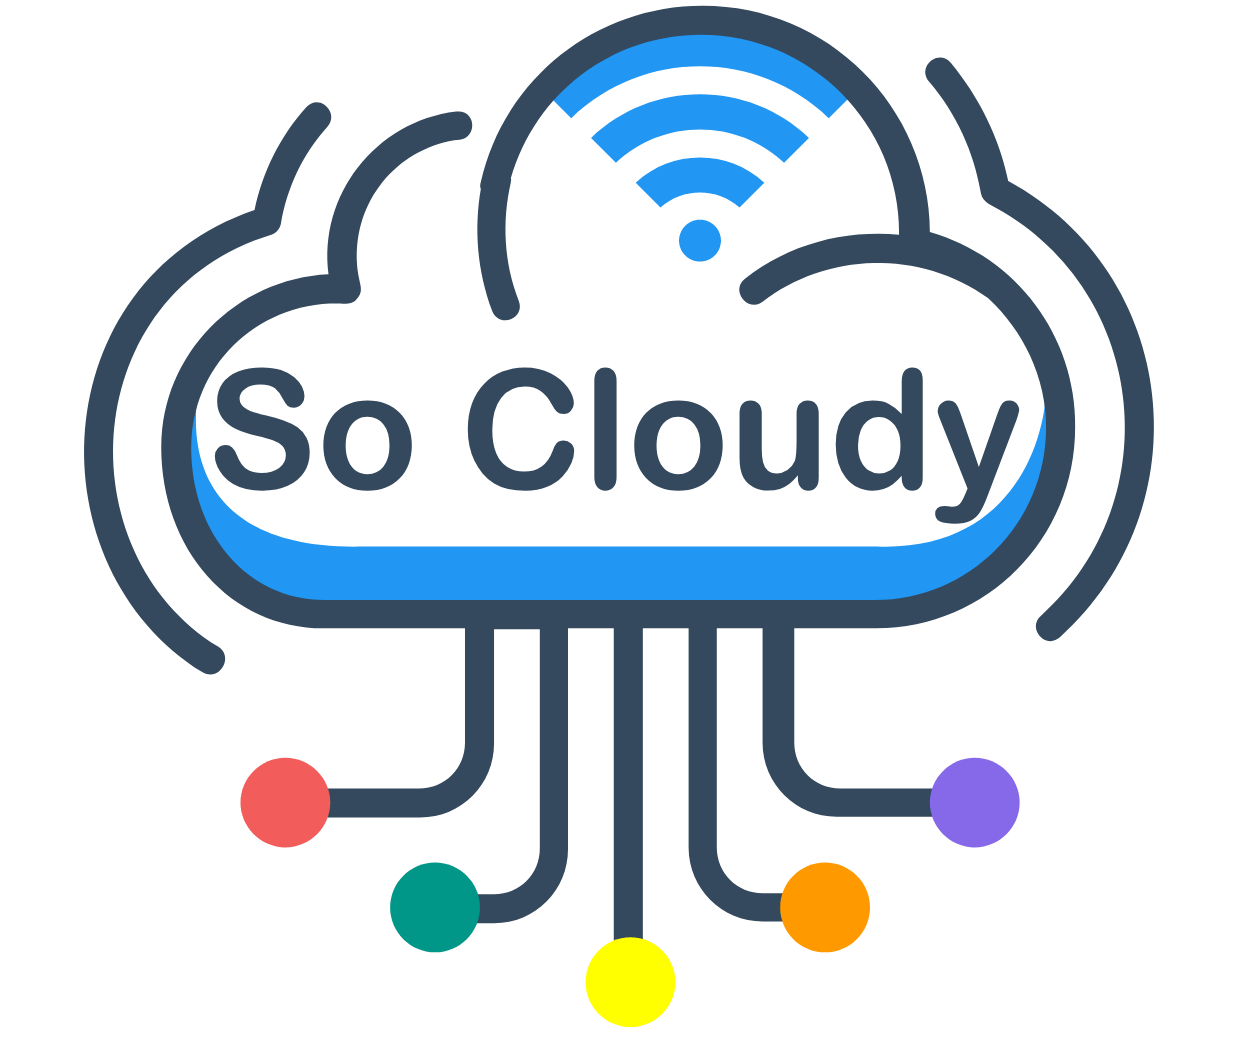 So Cloudy Logo